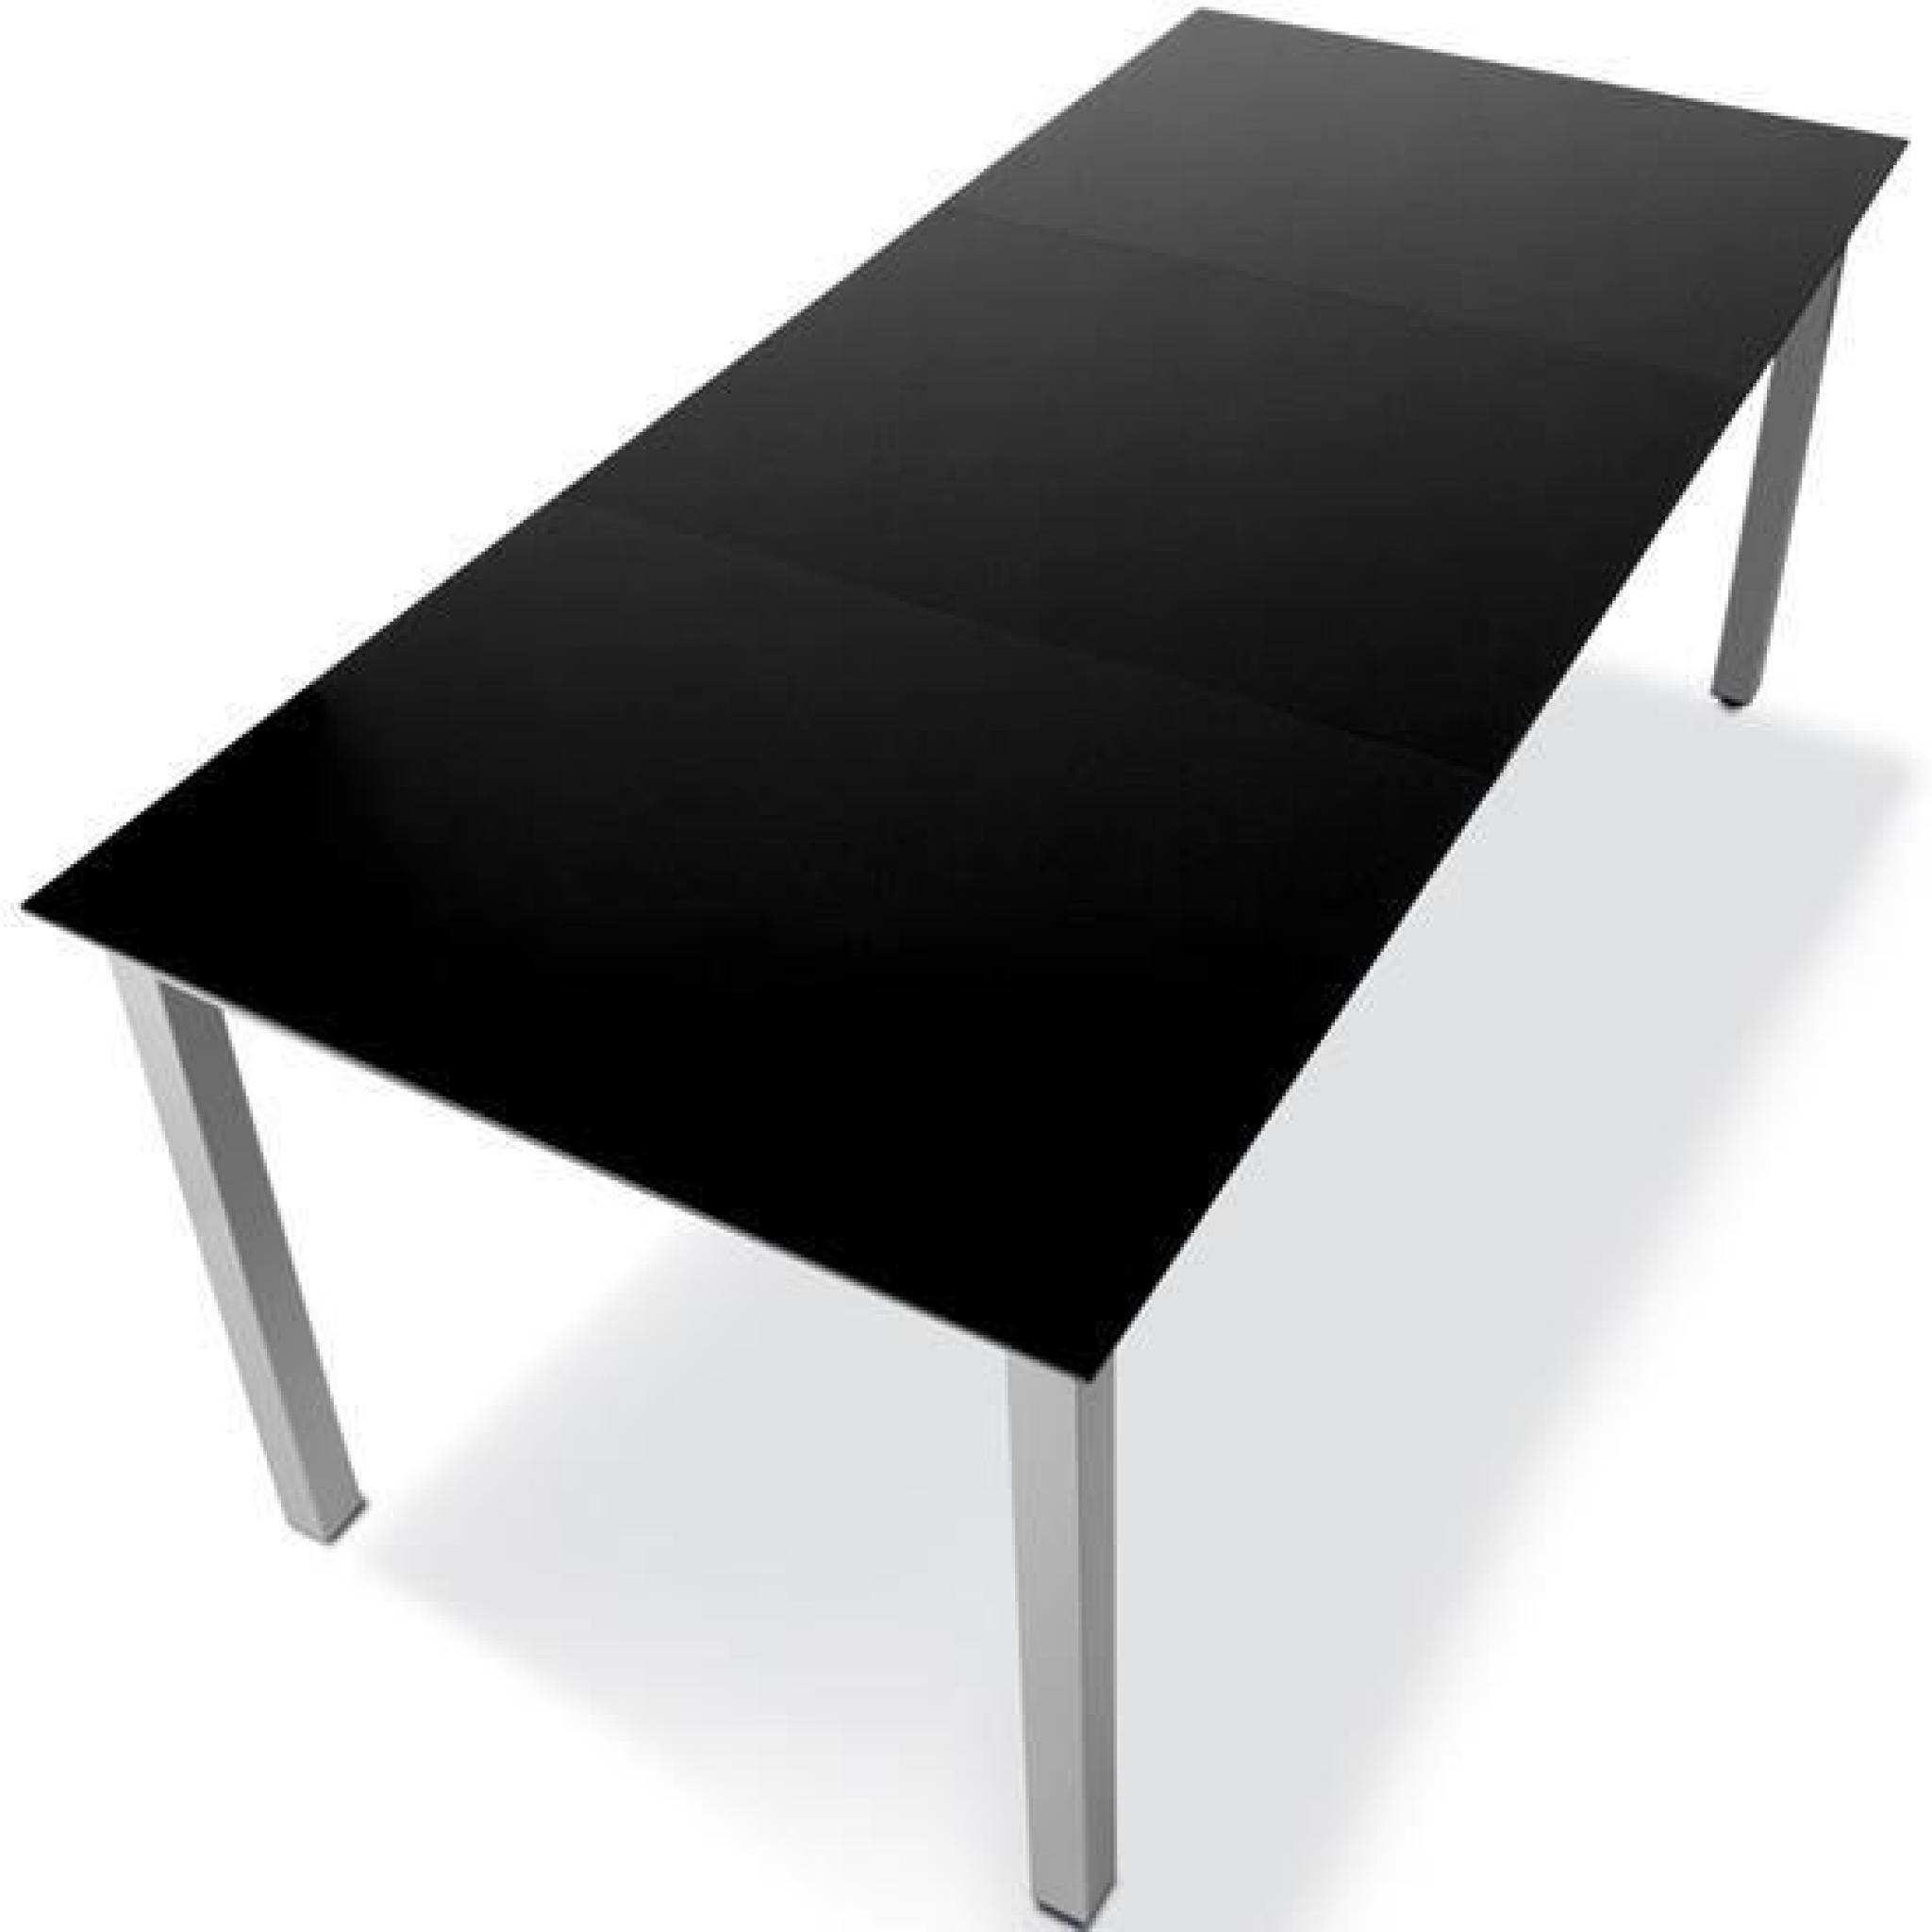 Table de jardin en alu 190 x 87 cm grtts01 gr achat for Jardin 87